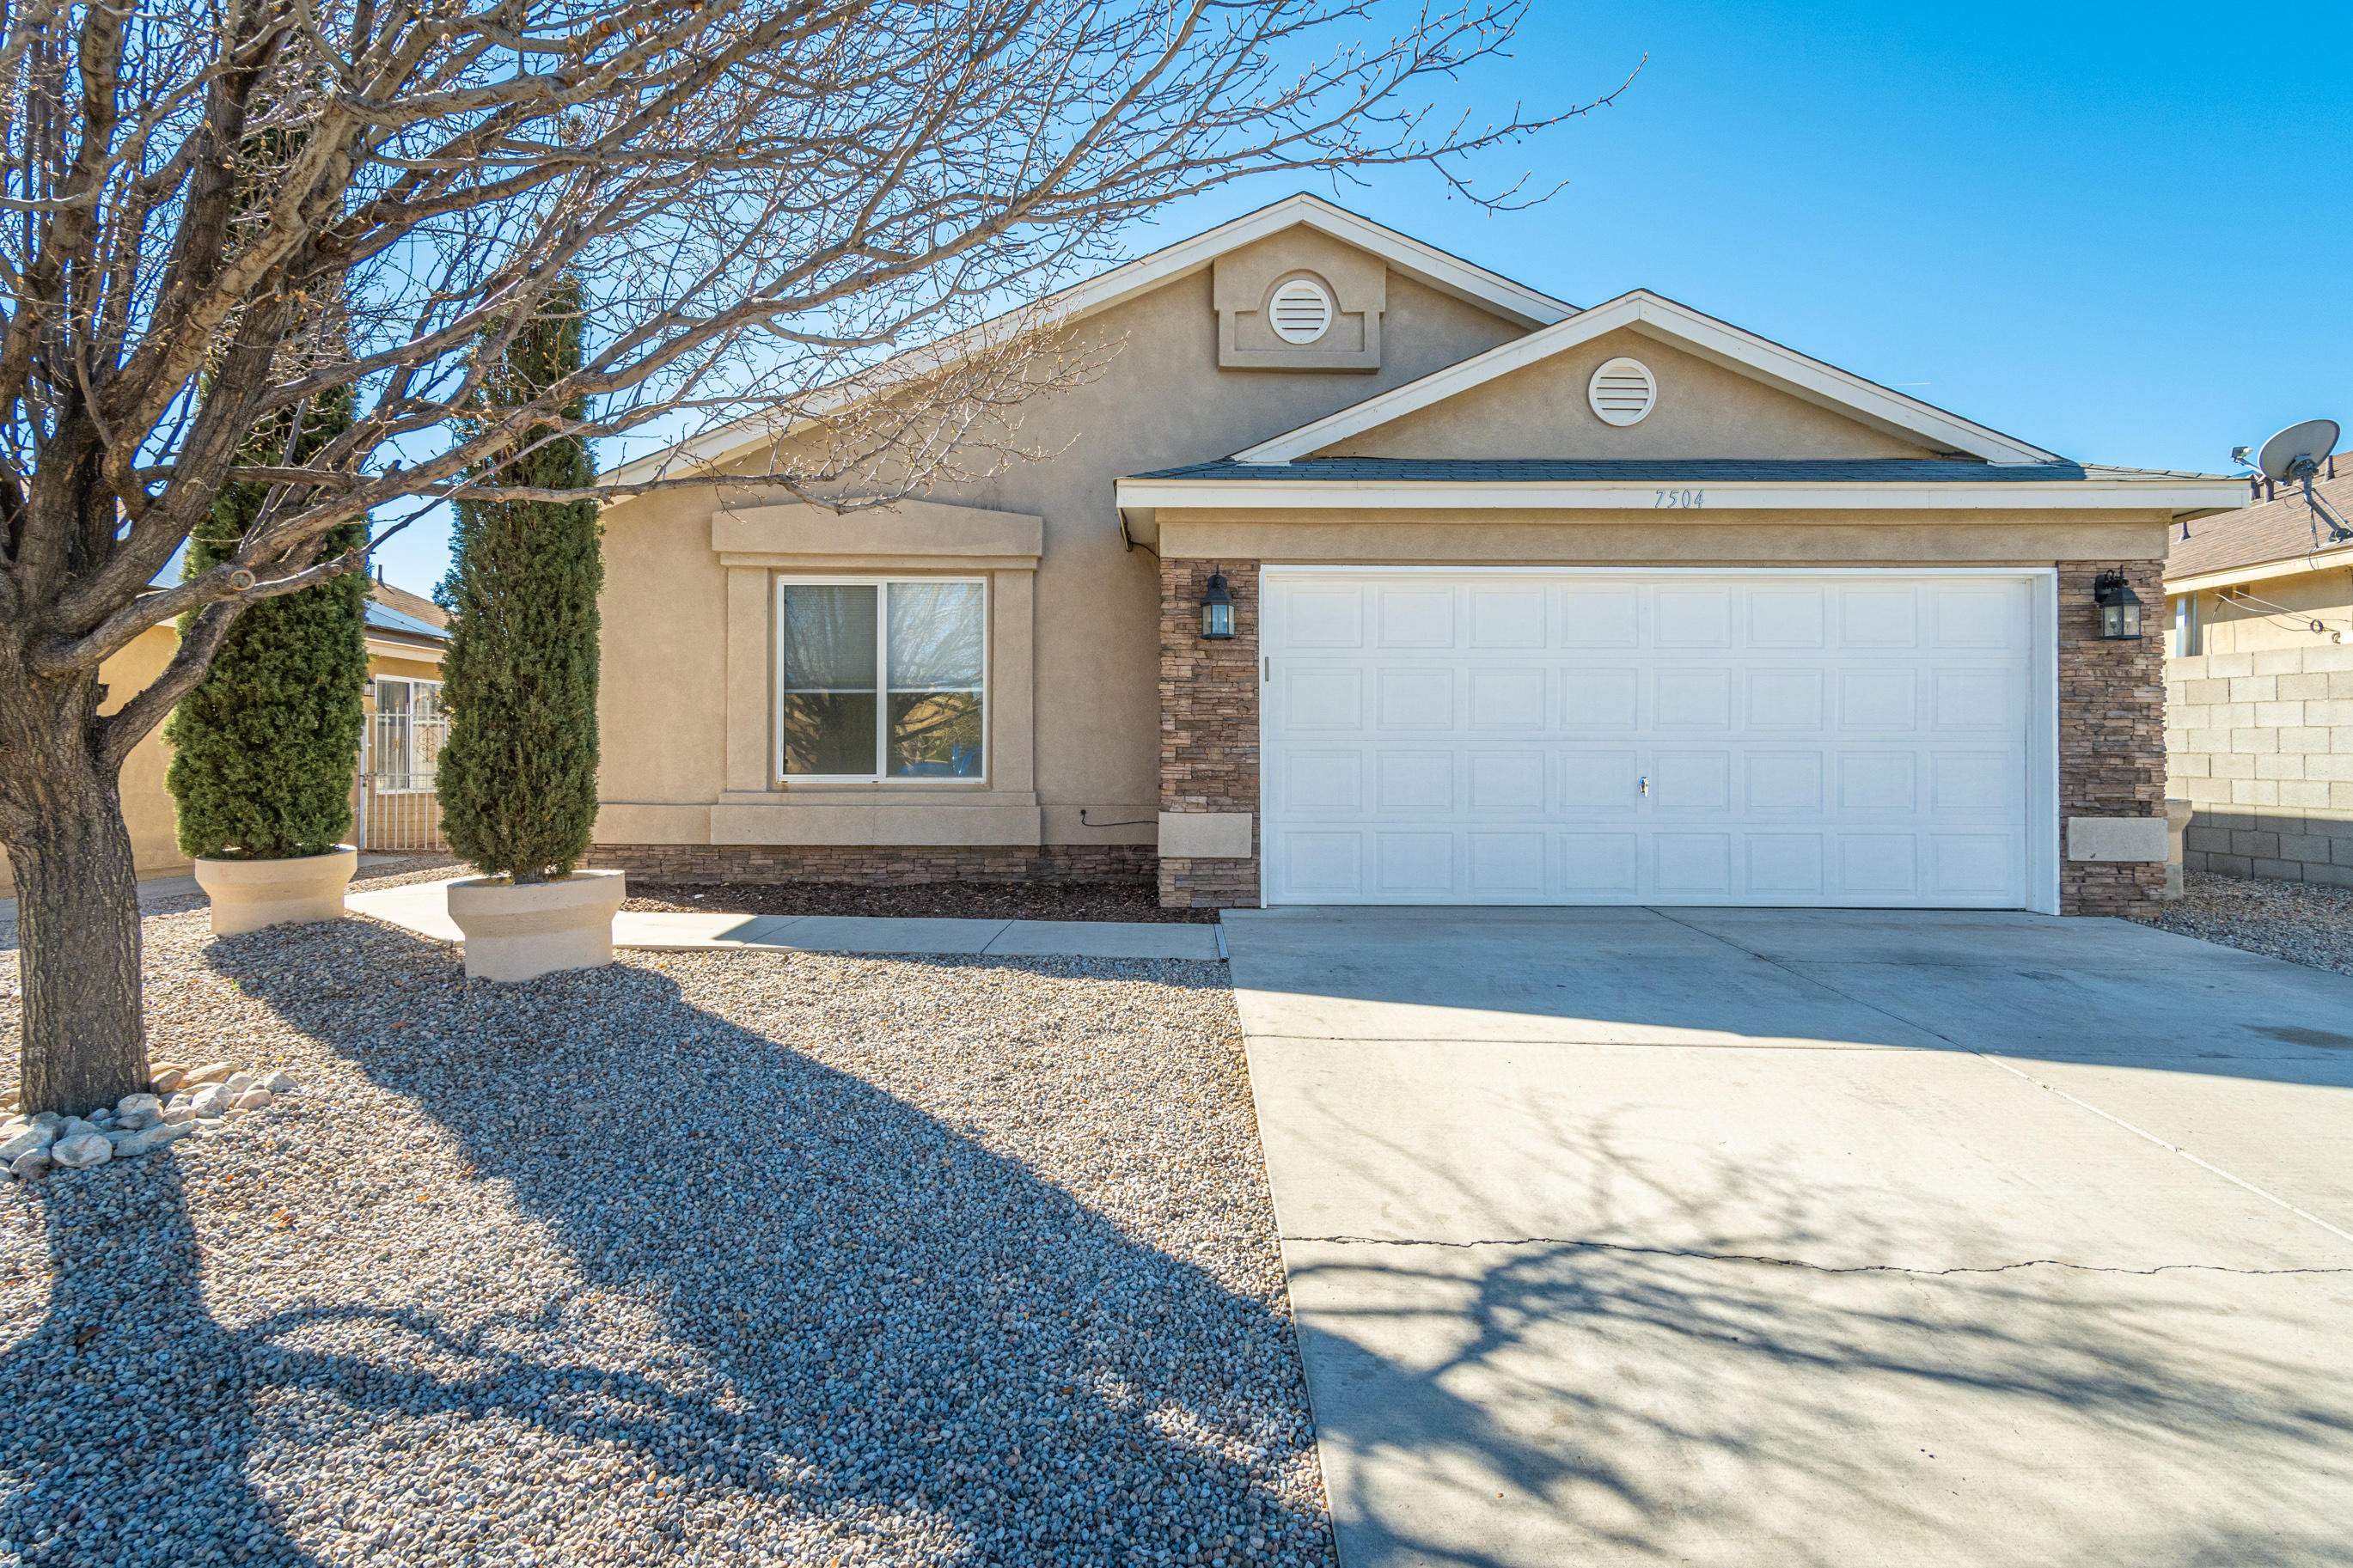 7504 RAINMAKER Road, Albuquerque NM 87121